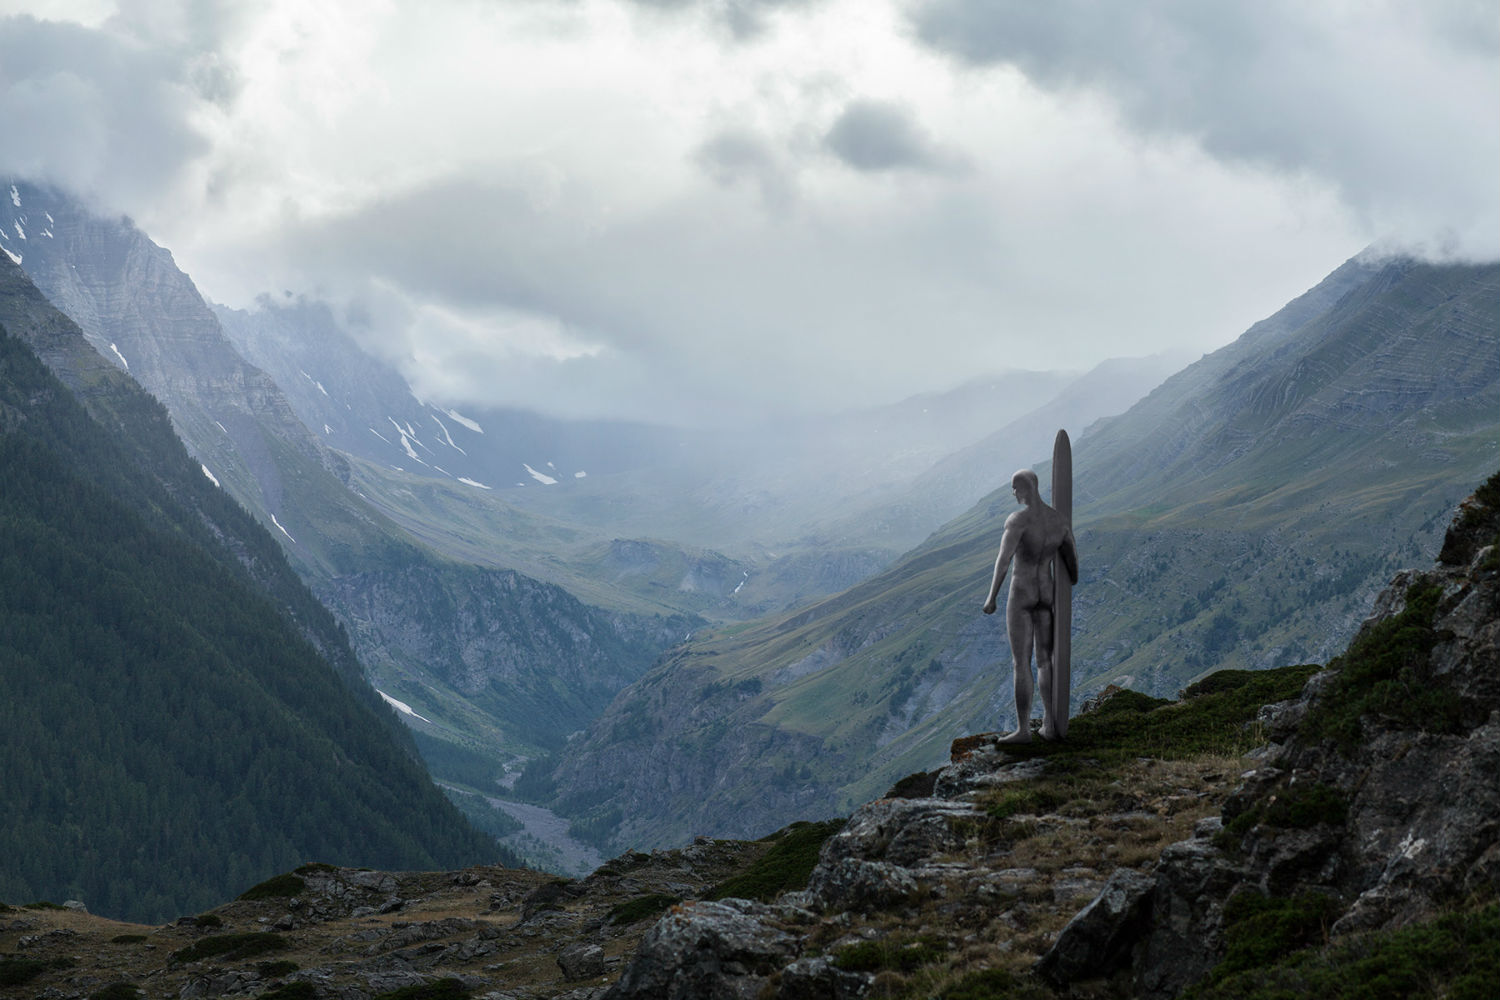 benoit lapray superheroes photography nature solitude silver surfer mountain